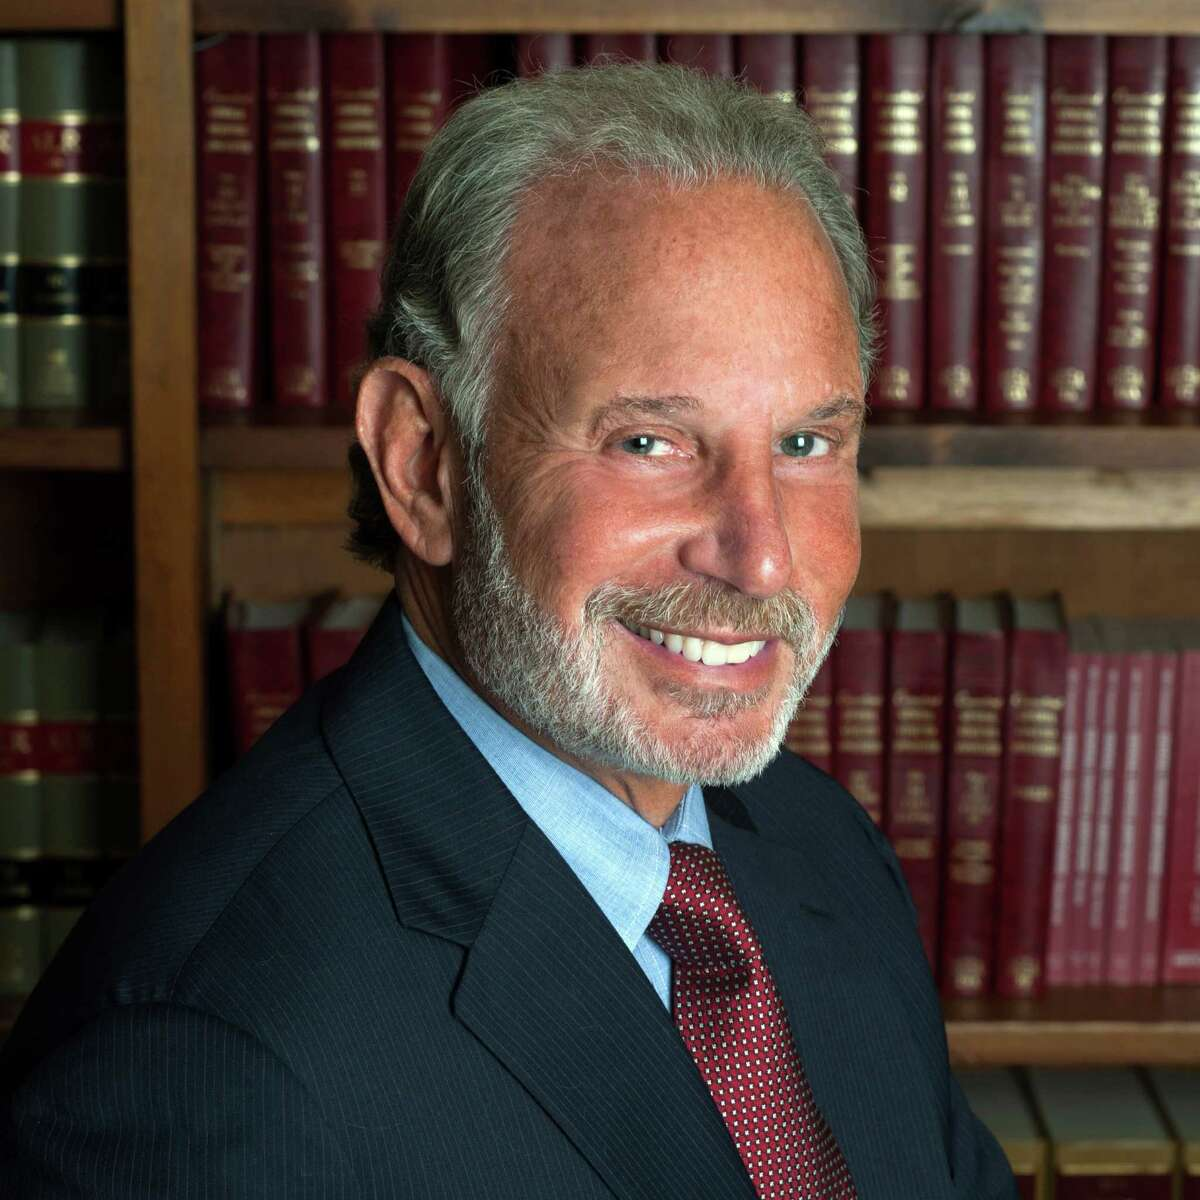 The National Academy of Family Law Attorneys has namedEdward Nusbaumamong the top 10 attorneys in Connecticut.Nusbaum, a Weston resident, is co-founder and principal of Westport law firm Nusbaum & Parrino. To obtain the designation, candidates must be licensed, nominated by a practicing attorney and in good standing with their local bar association. The NAFLA's board of governers reviews the finalists and selects 10 award recipients from each state. These rankings are independent and free from commercial influence. Nusbaum & Parrino practices family law in Westport, representing clients of high net worth.